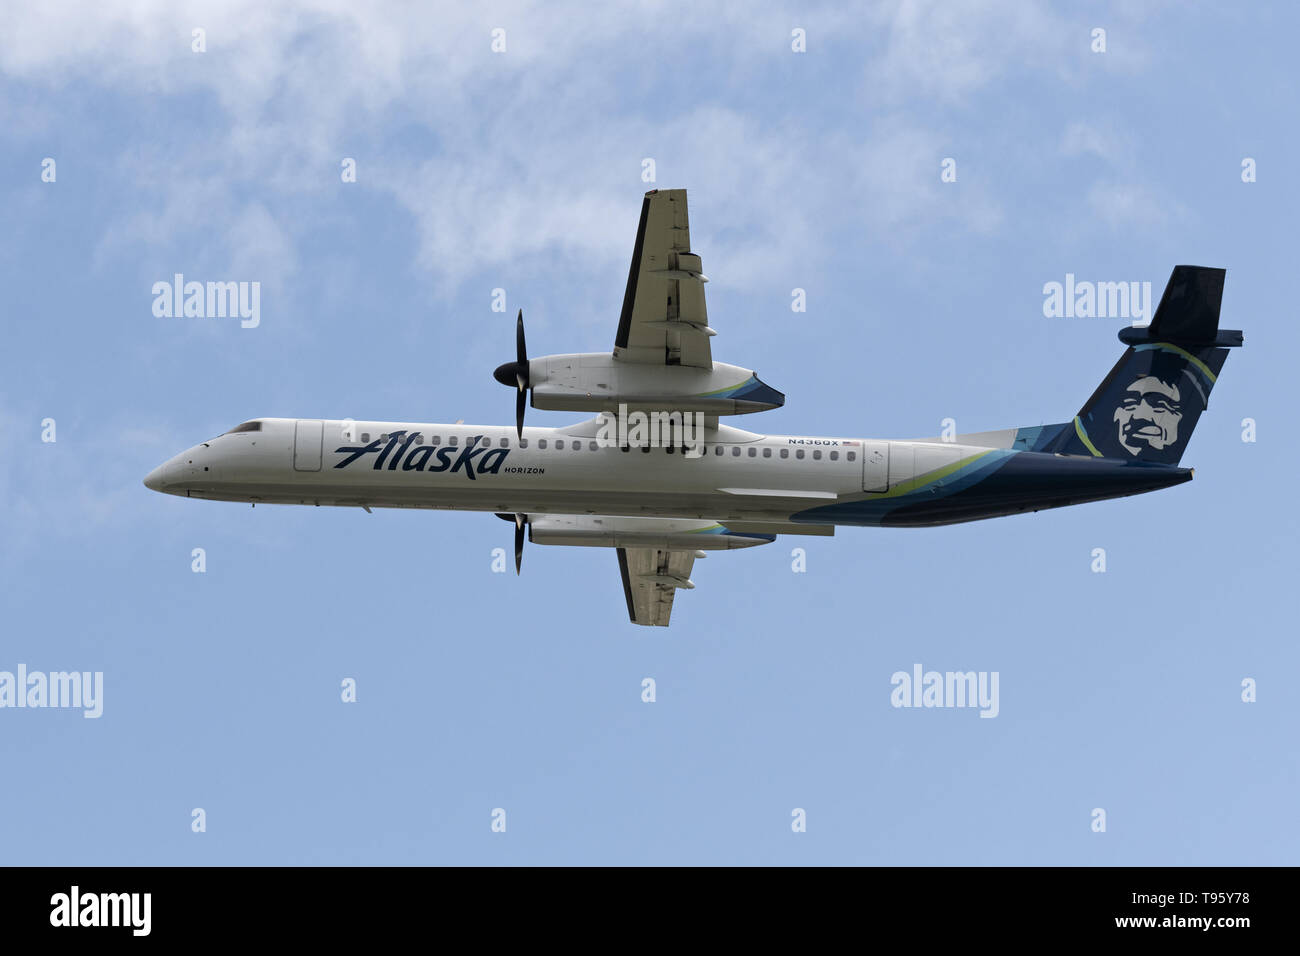 Richmond, British Columbia, Canada. 2nd May, 2019. An Alaska Airlines (operated by Horizon Air) Bombardier Dash 8 Q400 (N436QX) turboprop regional airliner airborne after take-off. Both Alaska Airlines and Horizon Air are part of the Alaska Air Group Inc. Credit: Bayne Stanley/ZUMA Wire/Alamy Live News - Stock Image